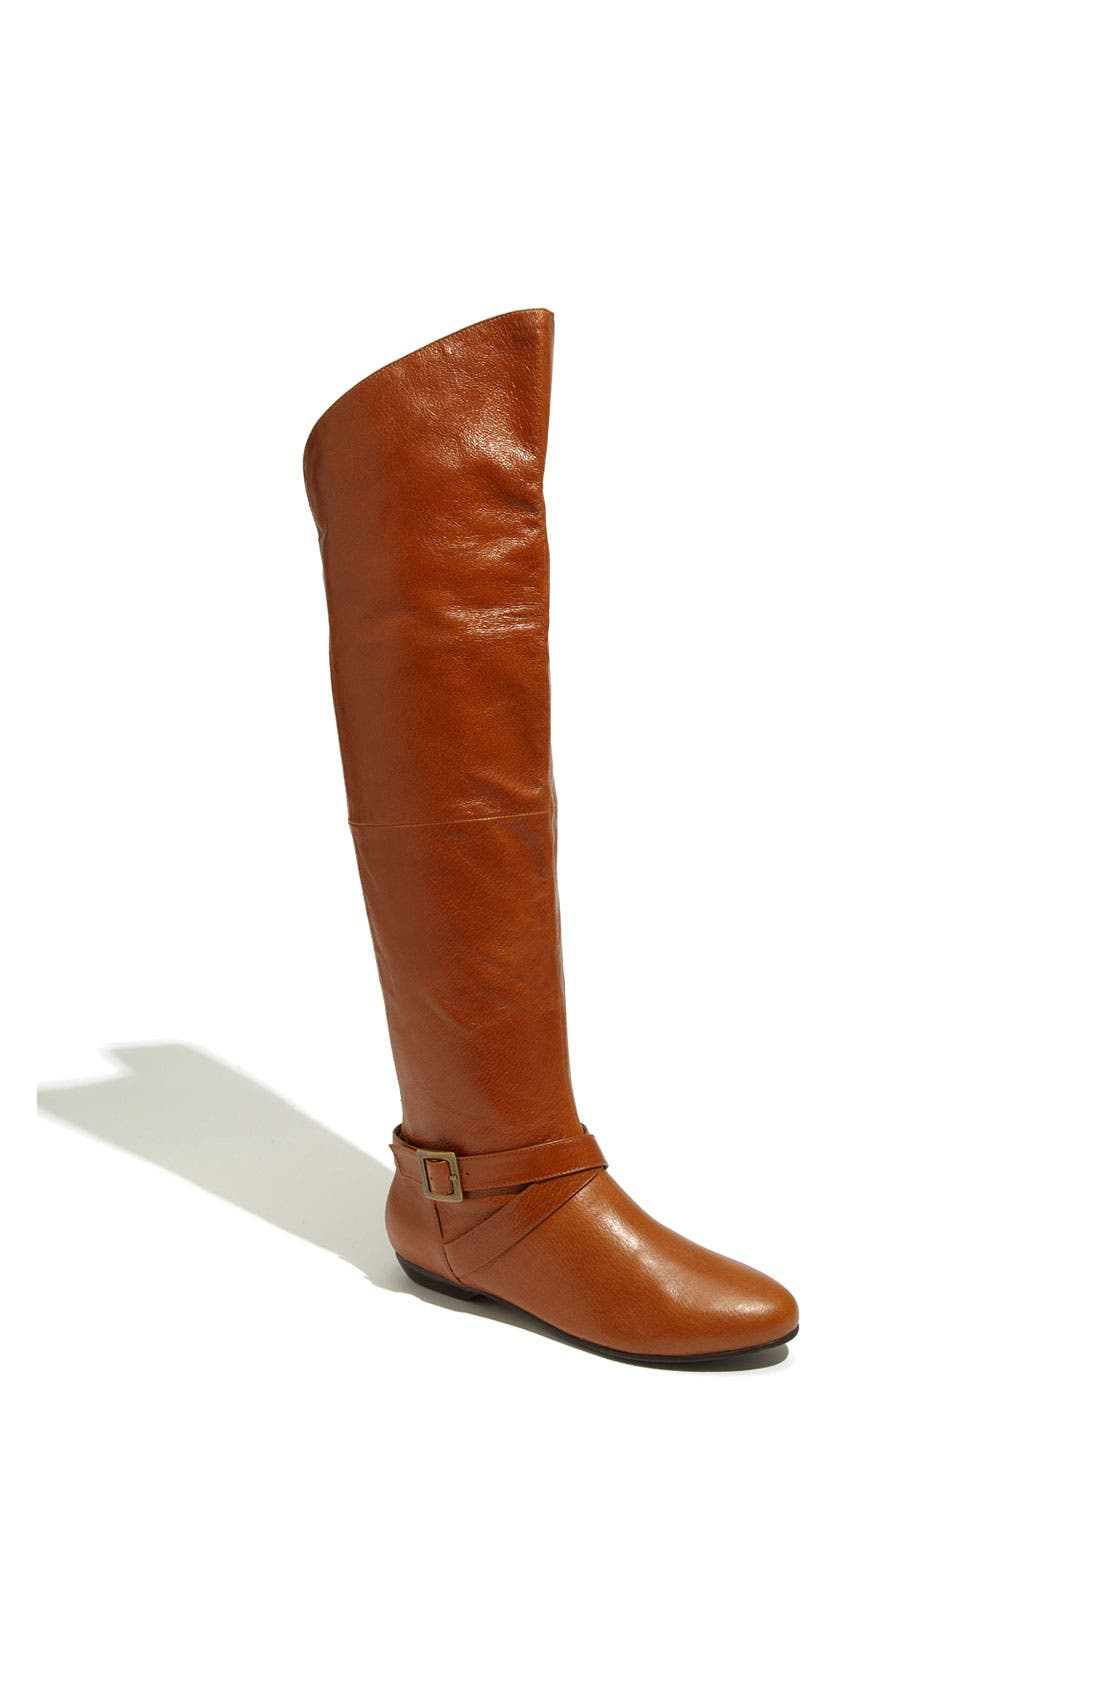 Alternate Image 1 Selected - Chinese Laundry 'Nostalgia' Over the Knee Boot